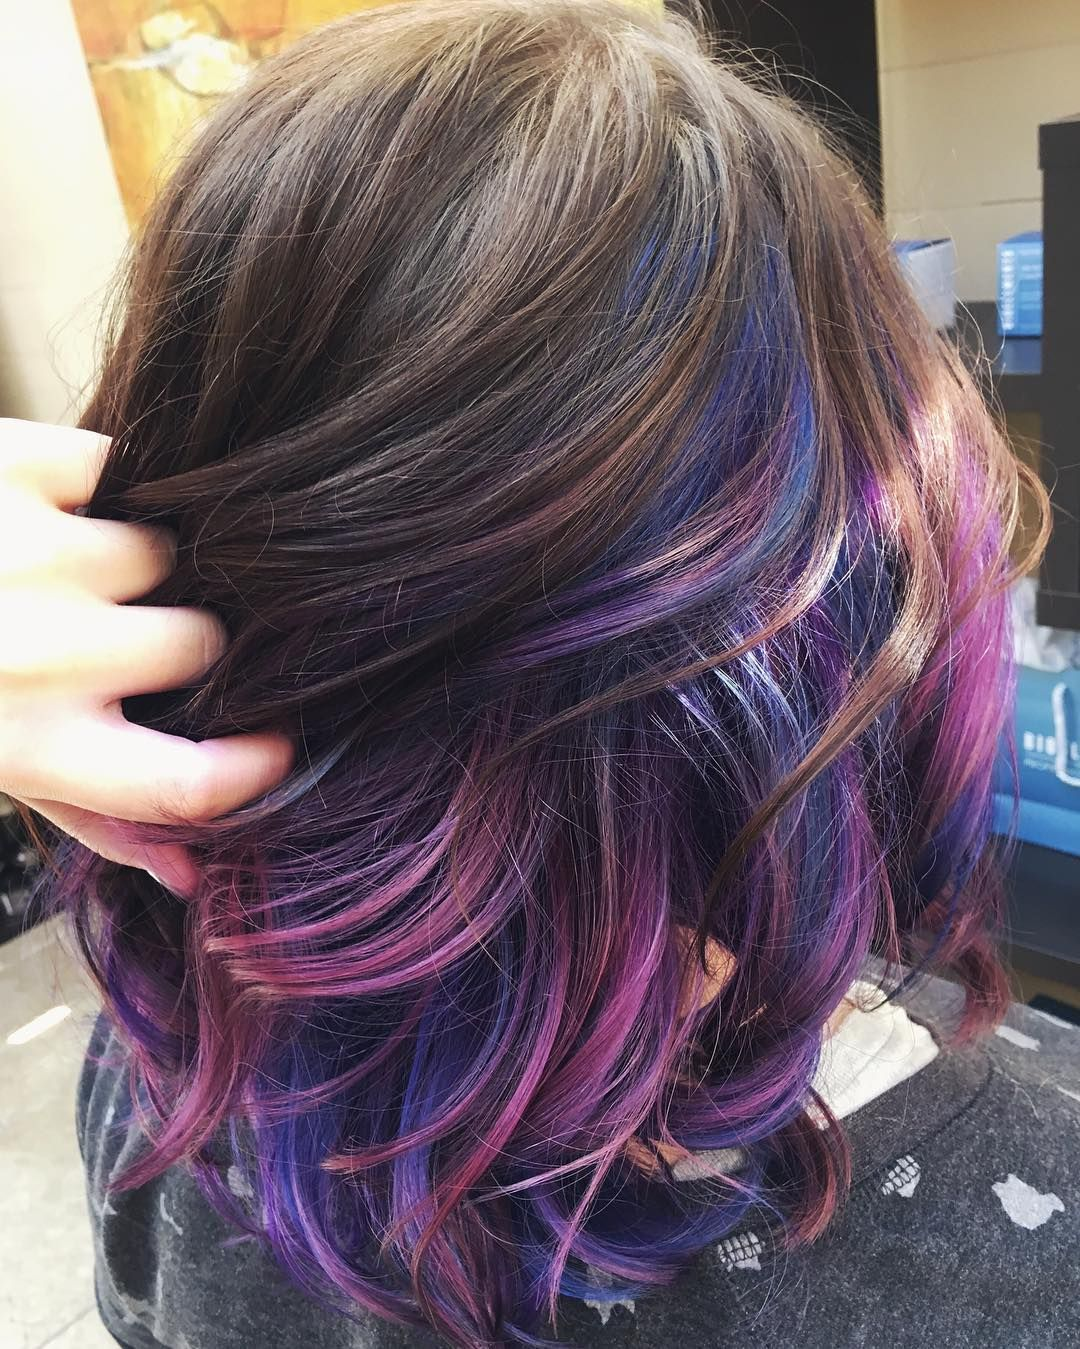 Galaxy Under Lights Hair Styles Hair Color Purple Peekaboo Hair